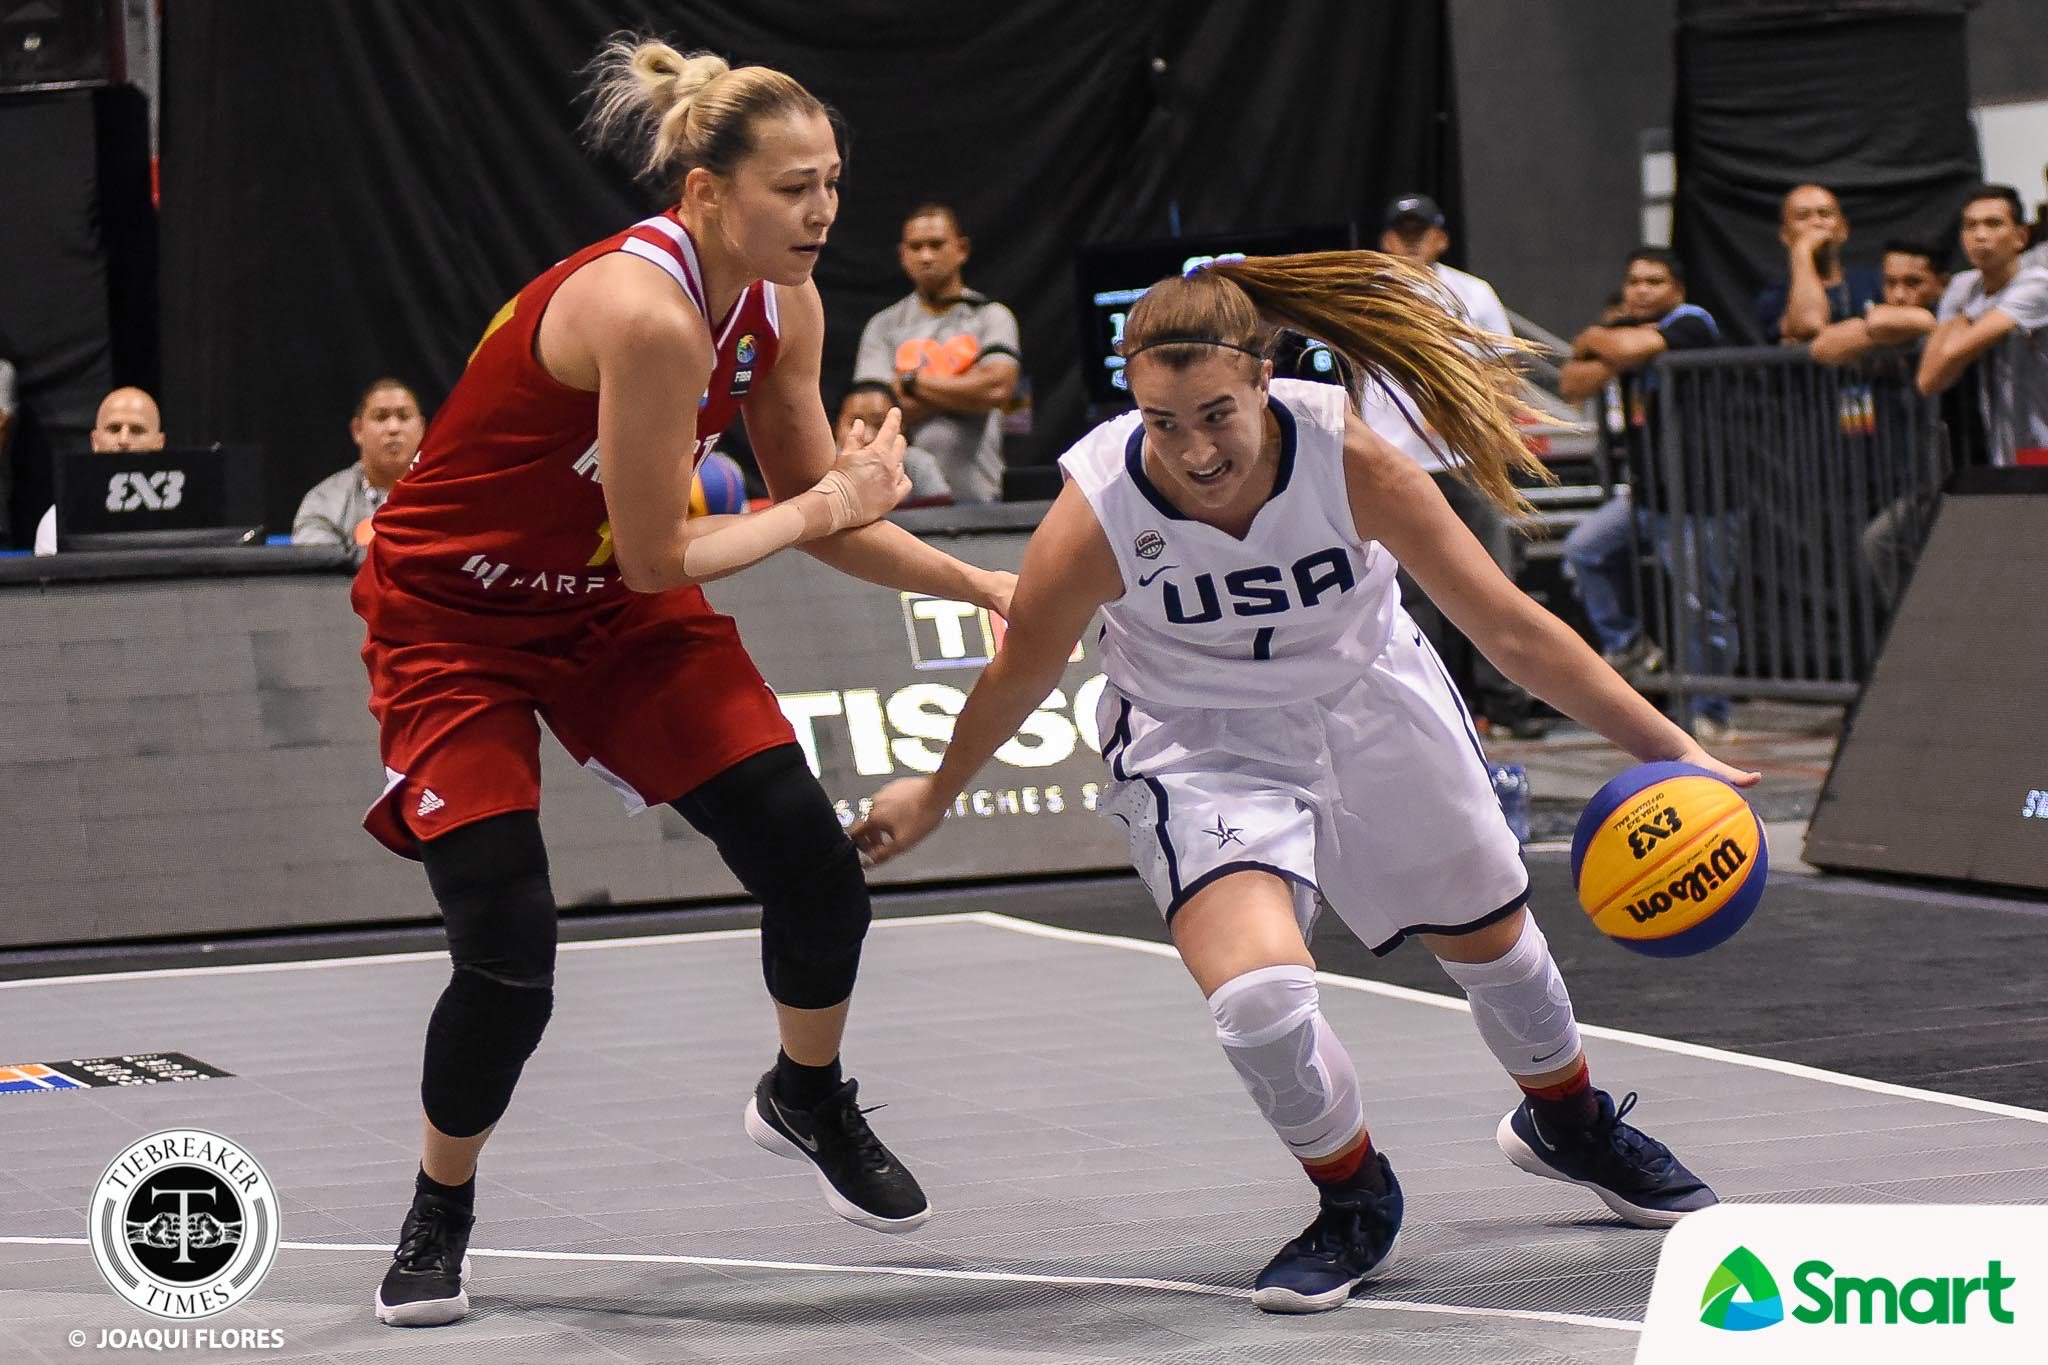 FIBA-3x3-World-Cup-2018-Ionescu WNBA Draft top pick Ionescu played in PH Arena two years ago 2018 FIBA 3X3 World Cup  - philippine sports news